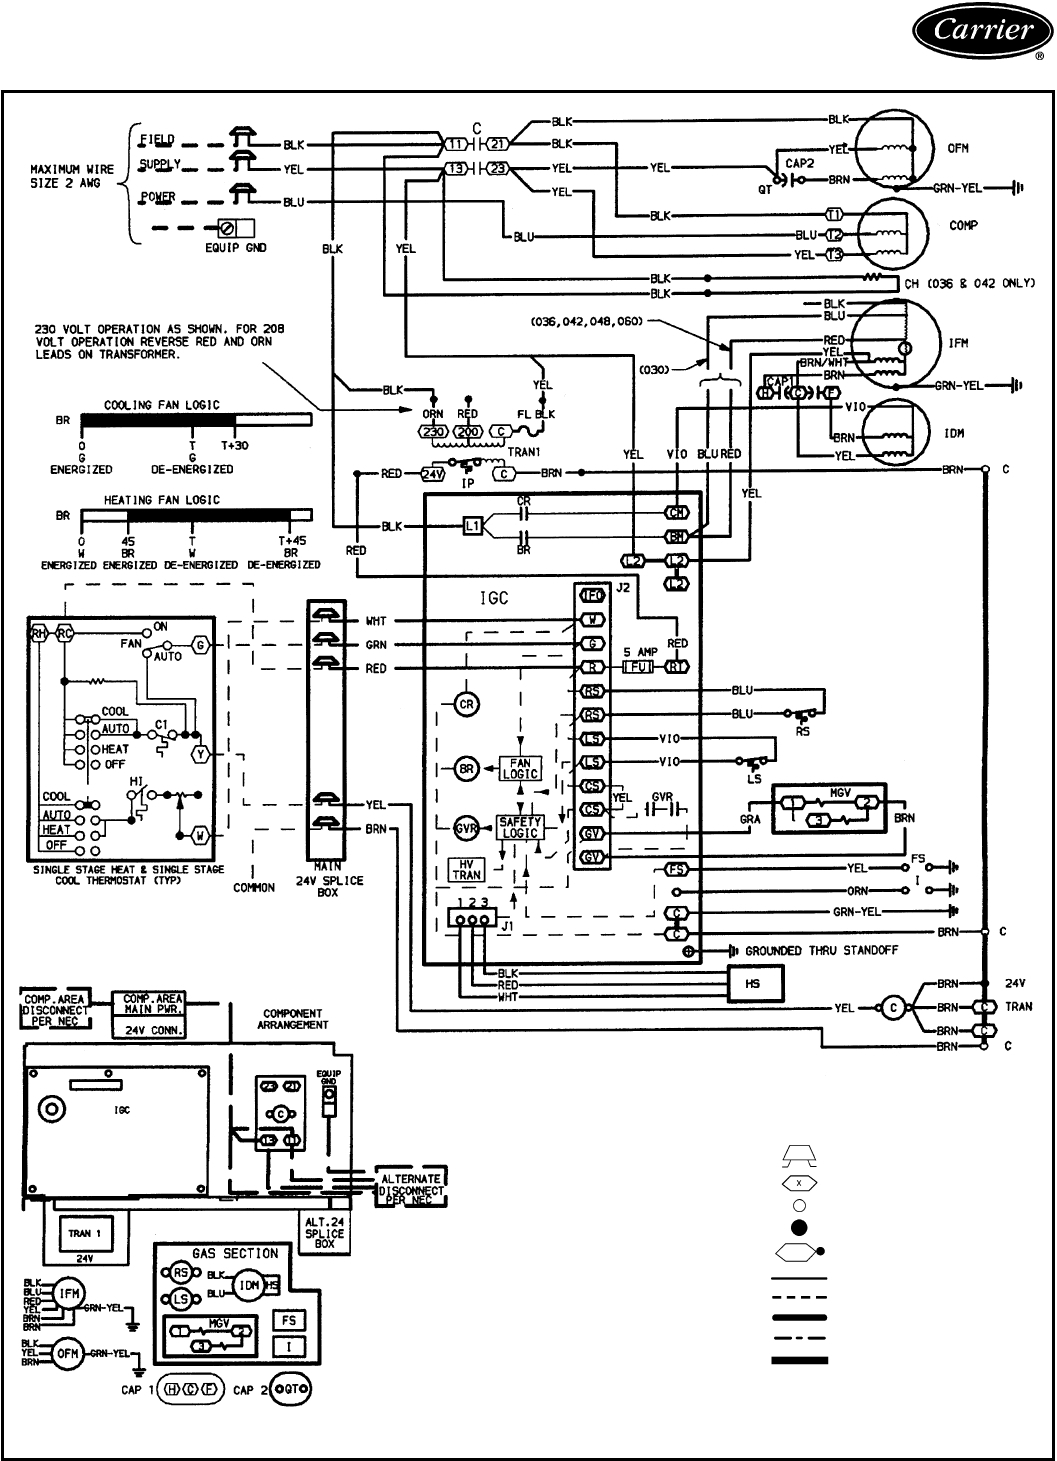 hight resolution of carrier furnace wiring diagram carrier furnace wiring diagram download 13t